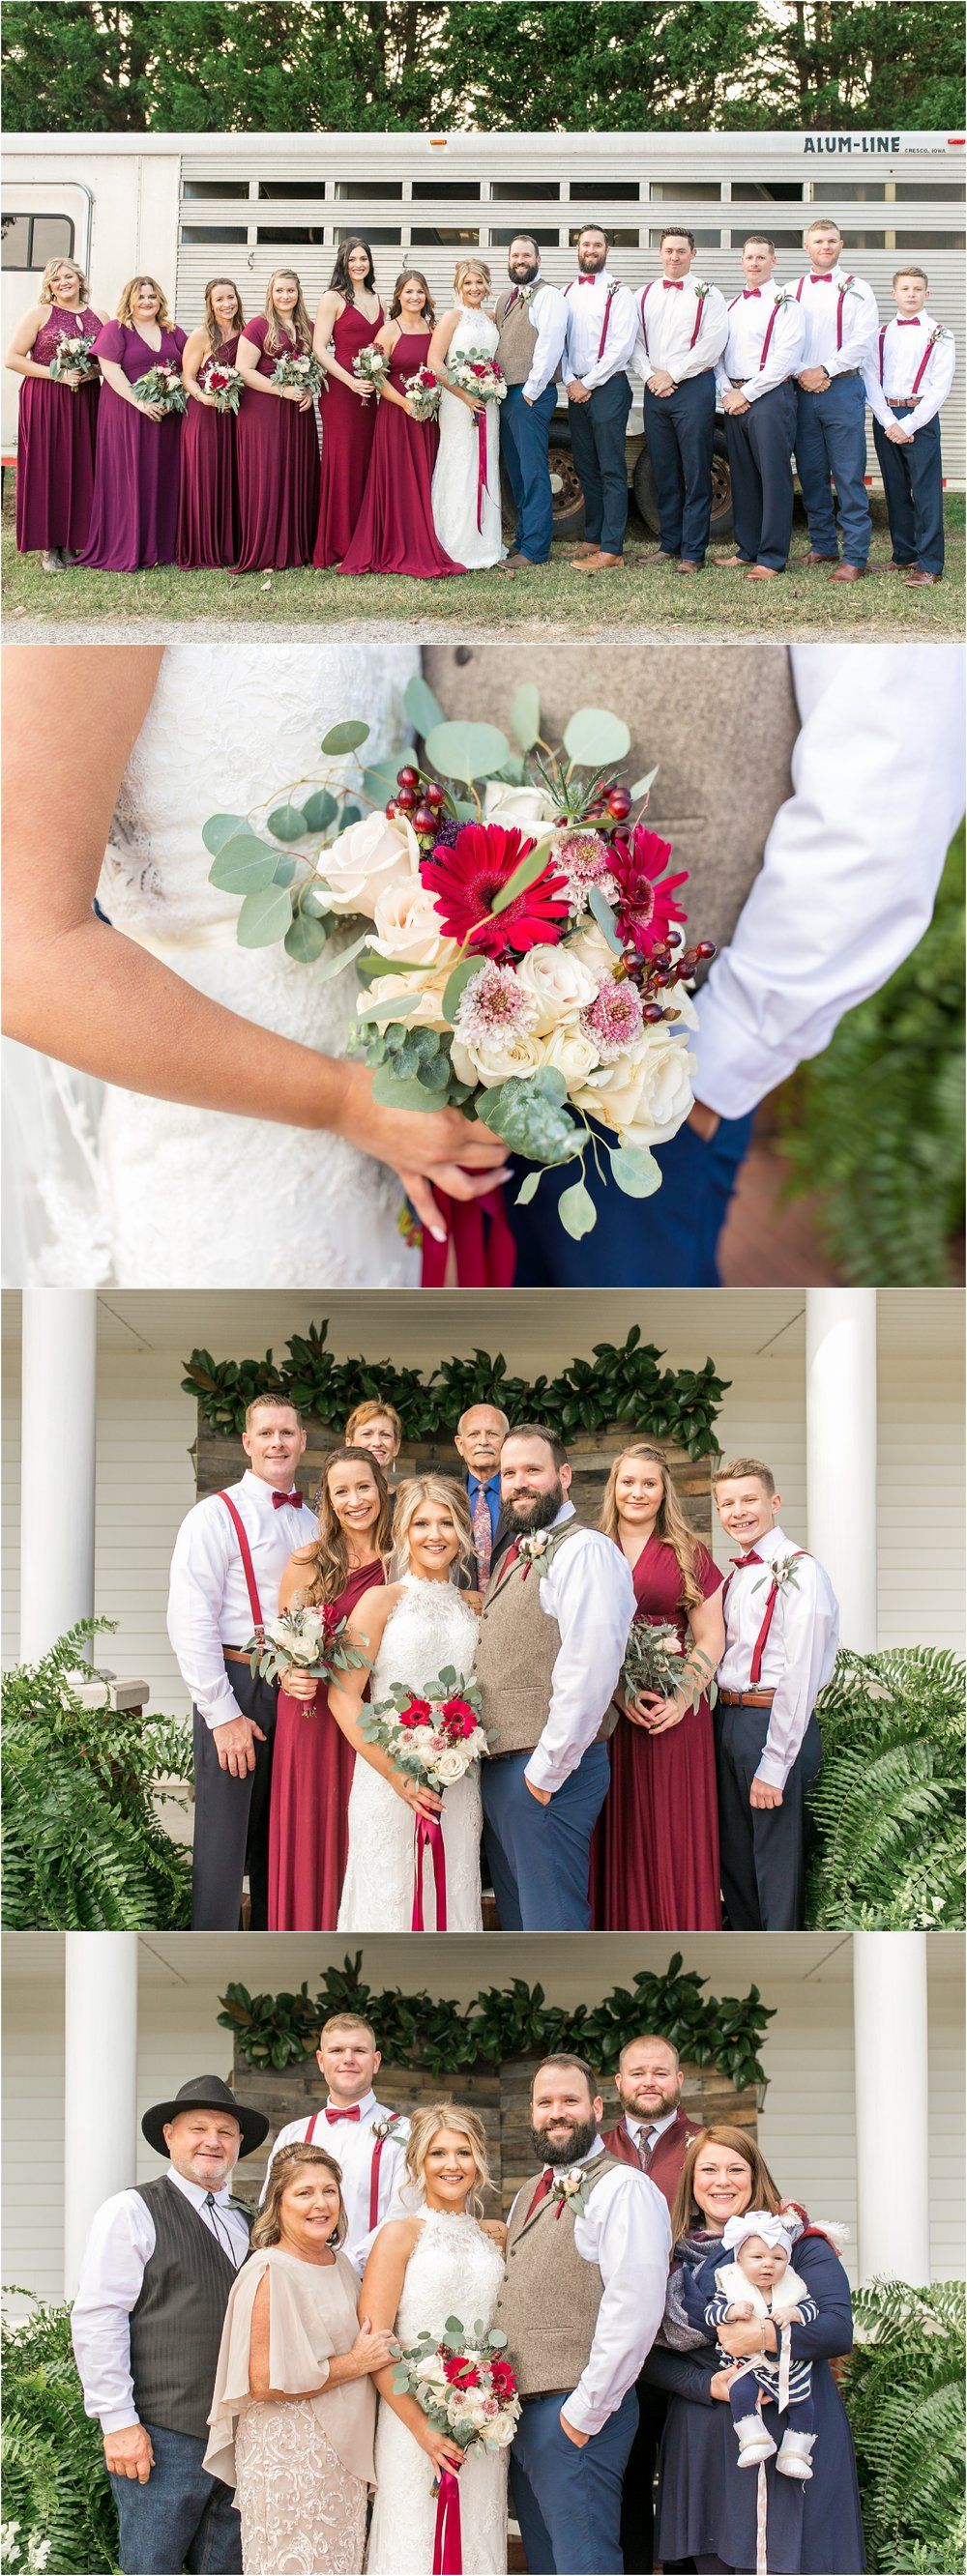 Savannah Eve Photography- Hinton-Davis Wedding- Sneak Peek-133-1.jpg